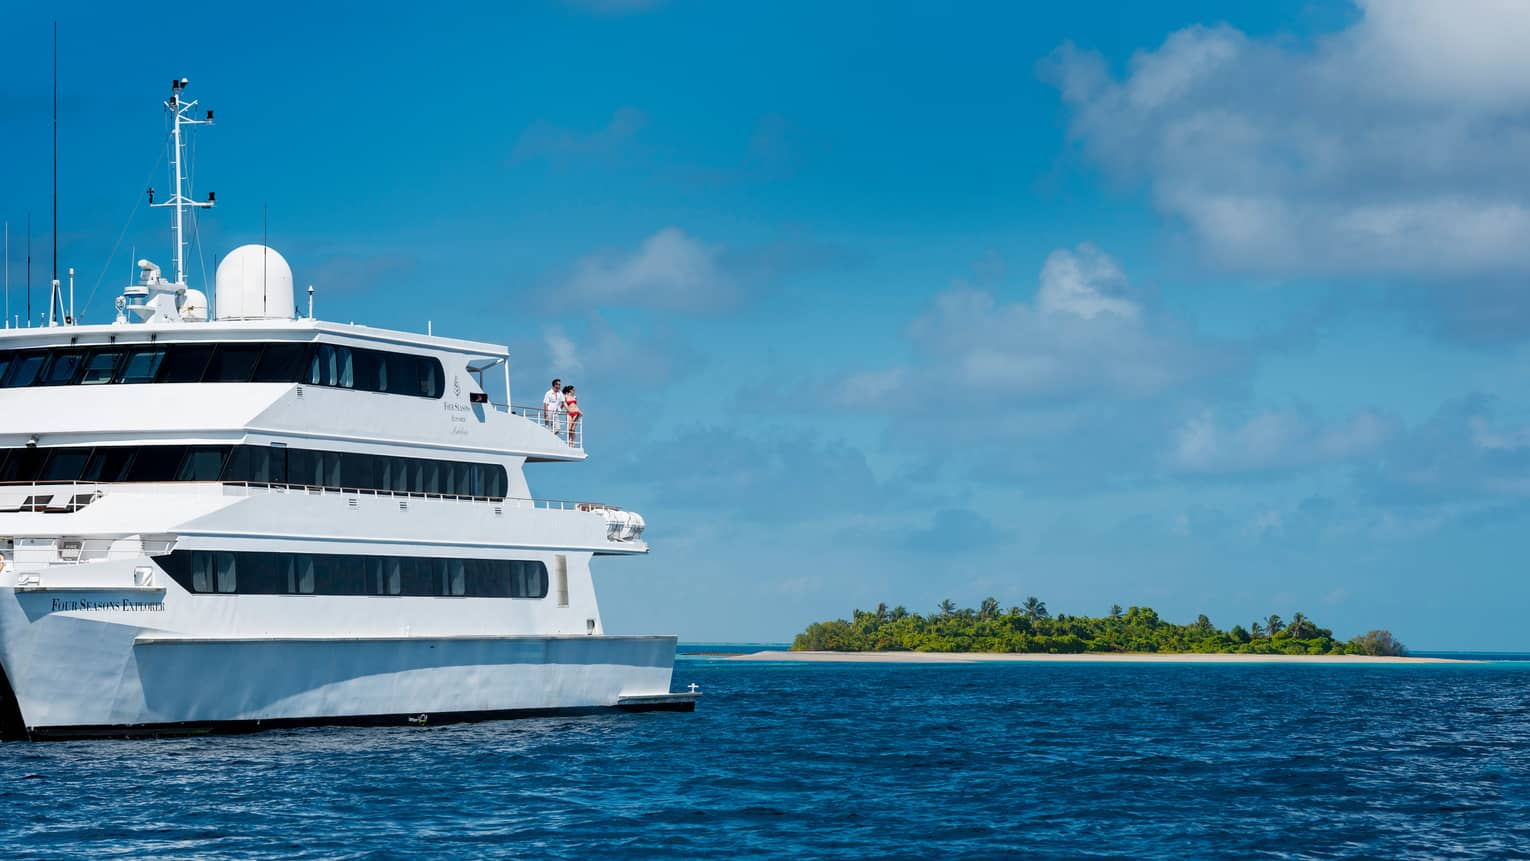 Couple on third-storey balcony of white catamaran yacht on ocean near small private atoll